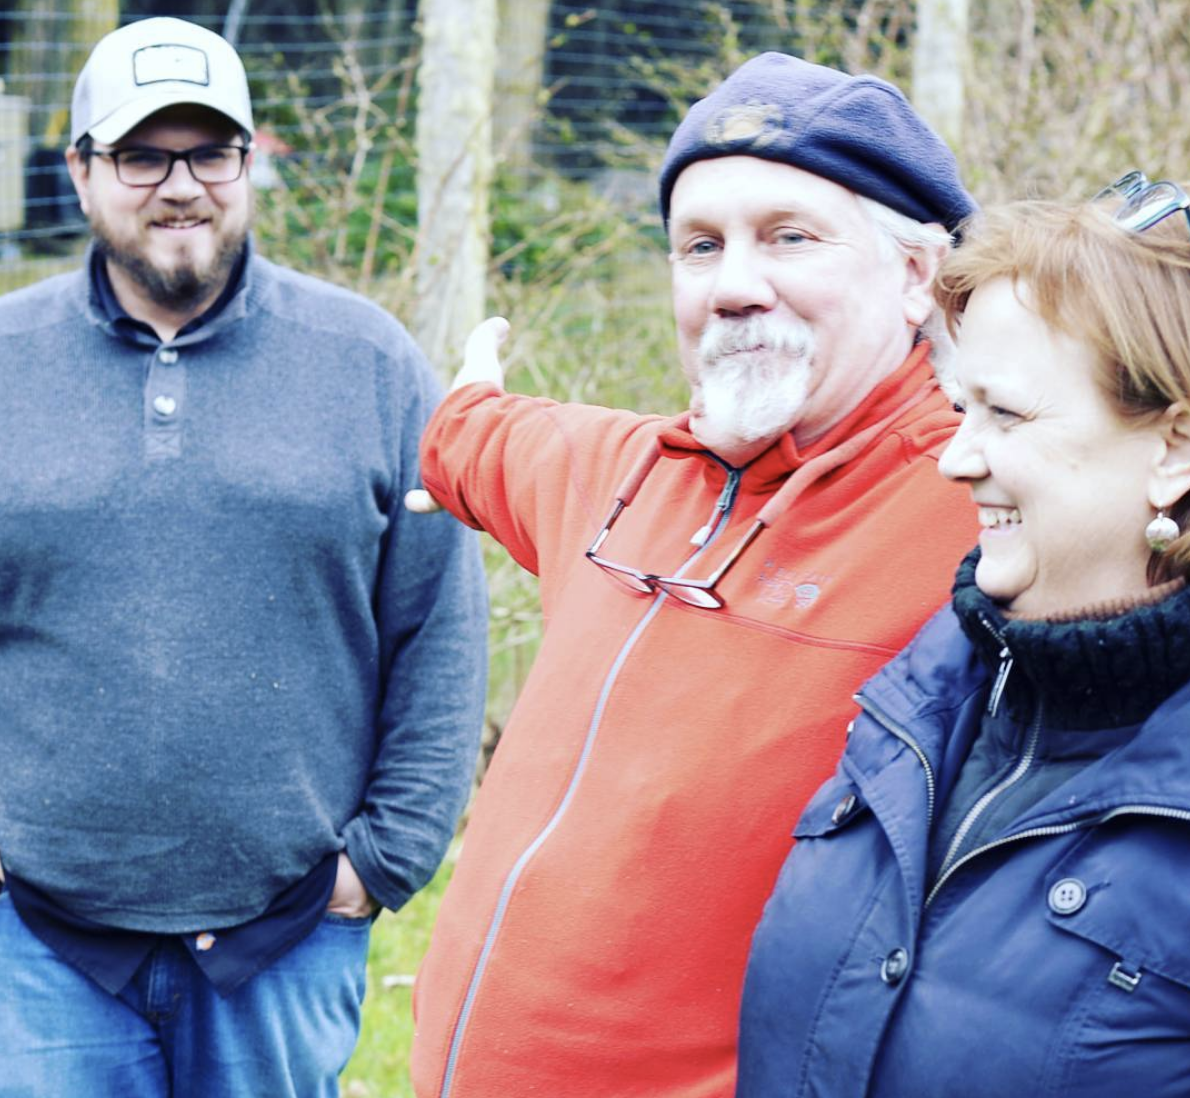 Alpenfire is a small batch cidery and family farm, and we all share the work: Bear tends the orchard, Nancy makes the cider, our son Philippe markets the business, and our grandkids make frequent appearances.